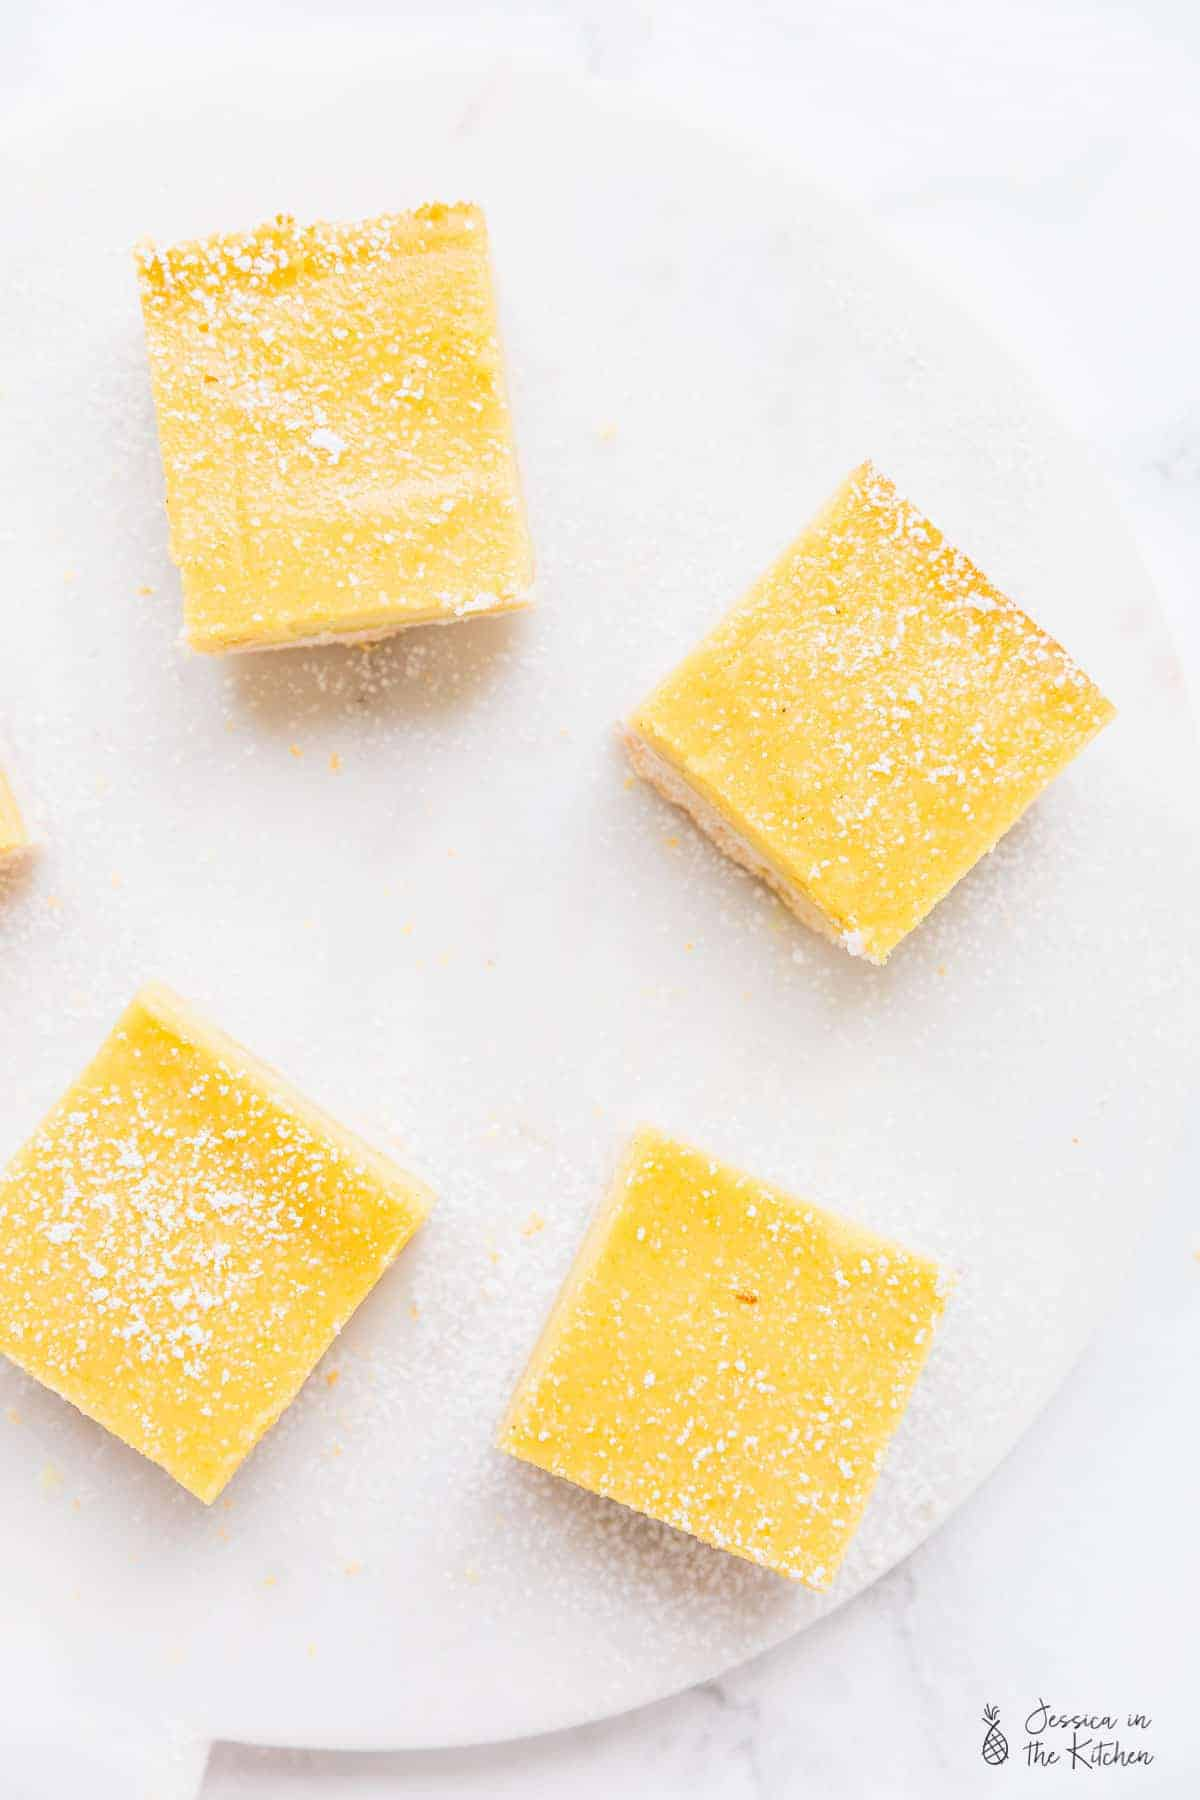 These Vegan Lemon Bars are a dessert dream come true! Made with shortbread crust and loaded with divine lemon flavour, you'll never guess that they are vegan! via https://jessicainthekitchen.com #vegan #lemon #dessert #healthy #vegetarian #glutenfree #veganrecipes